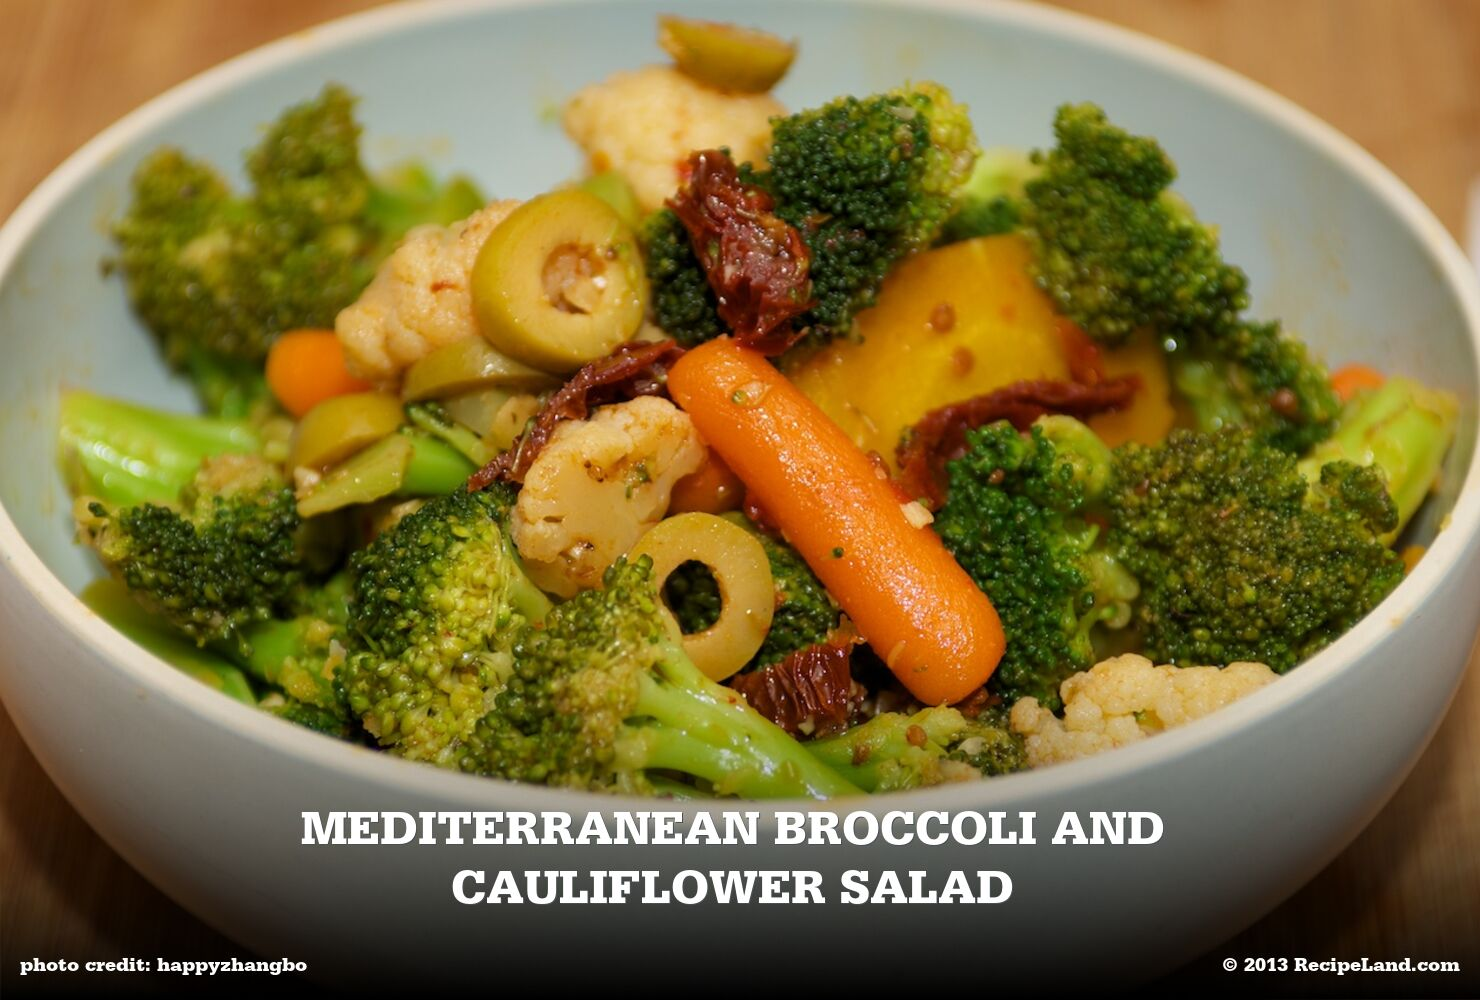 Mediterranean Broccoli and Cauliflower Salad